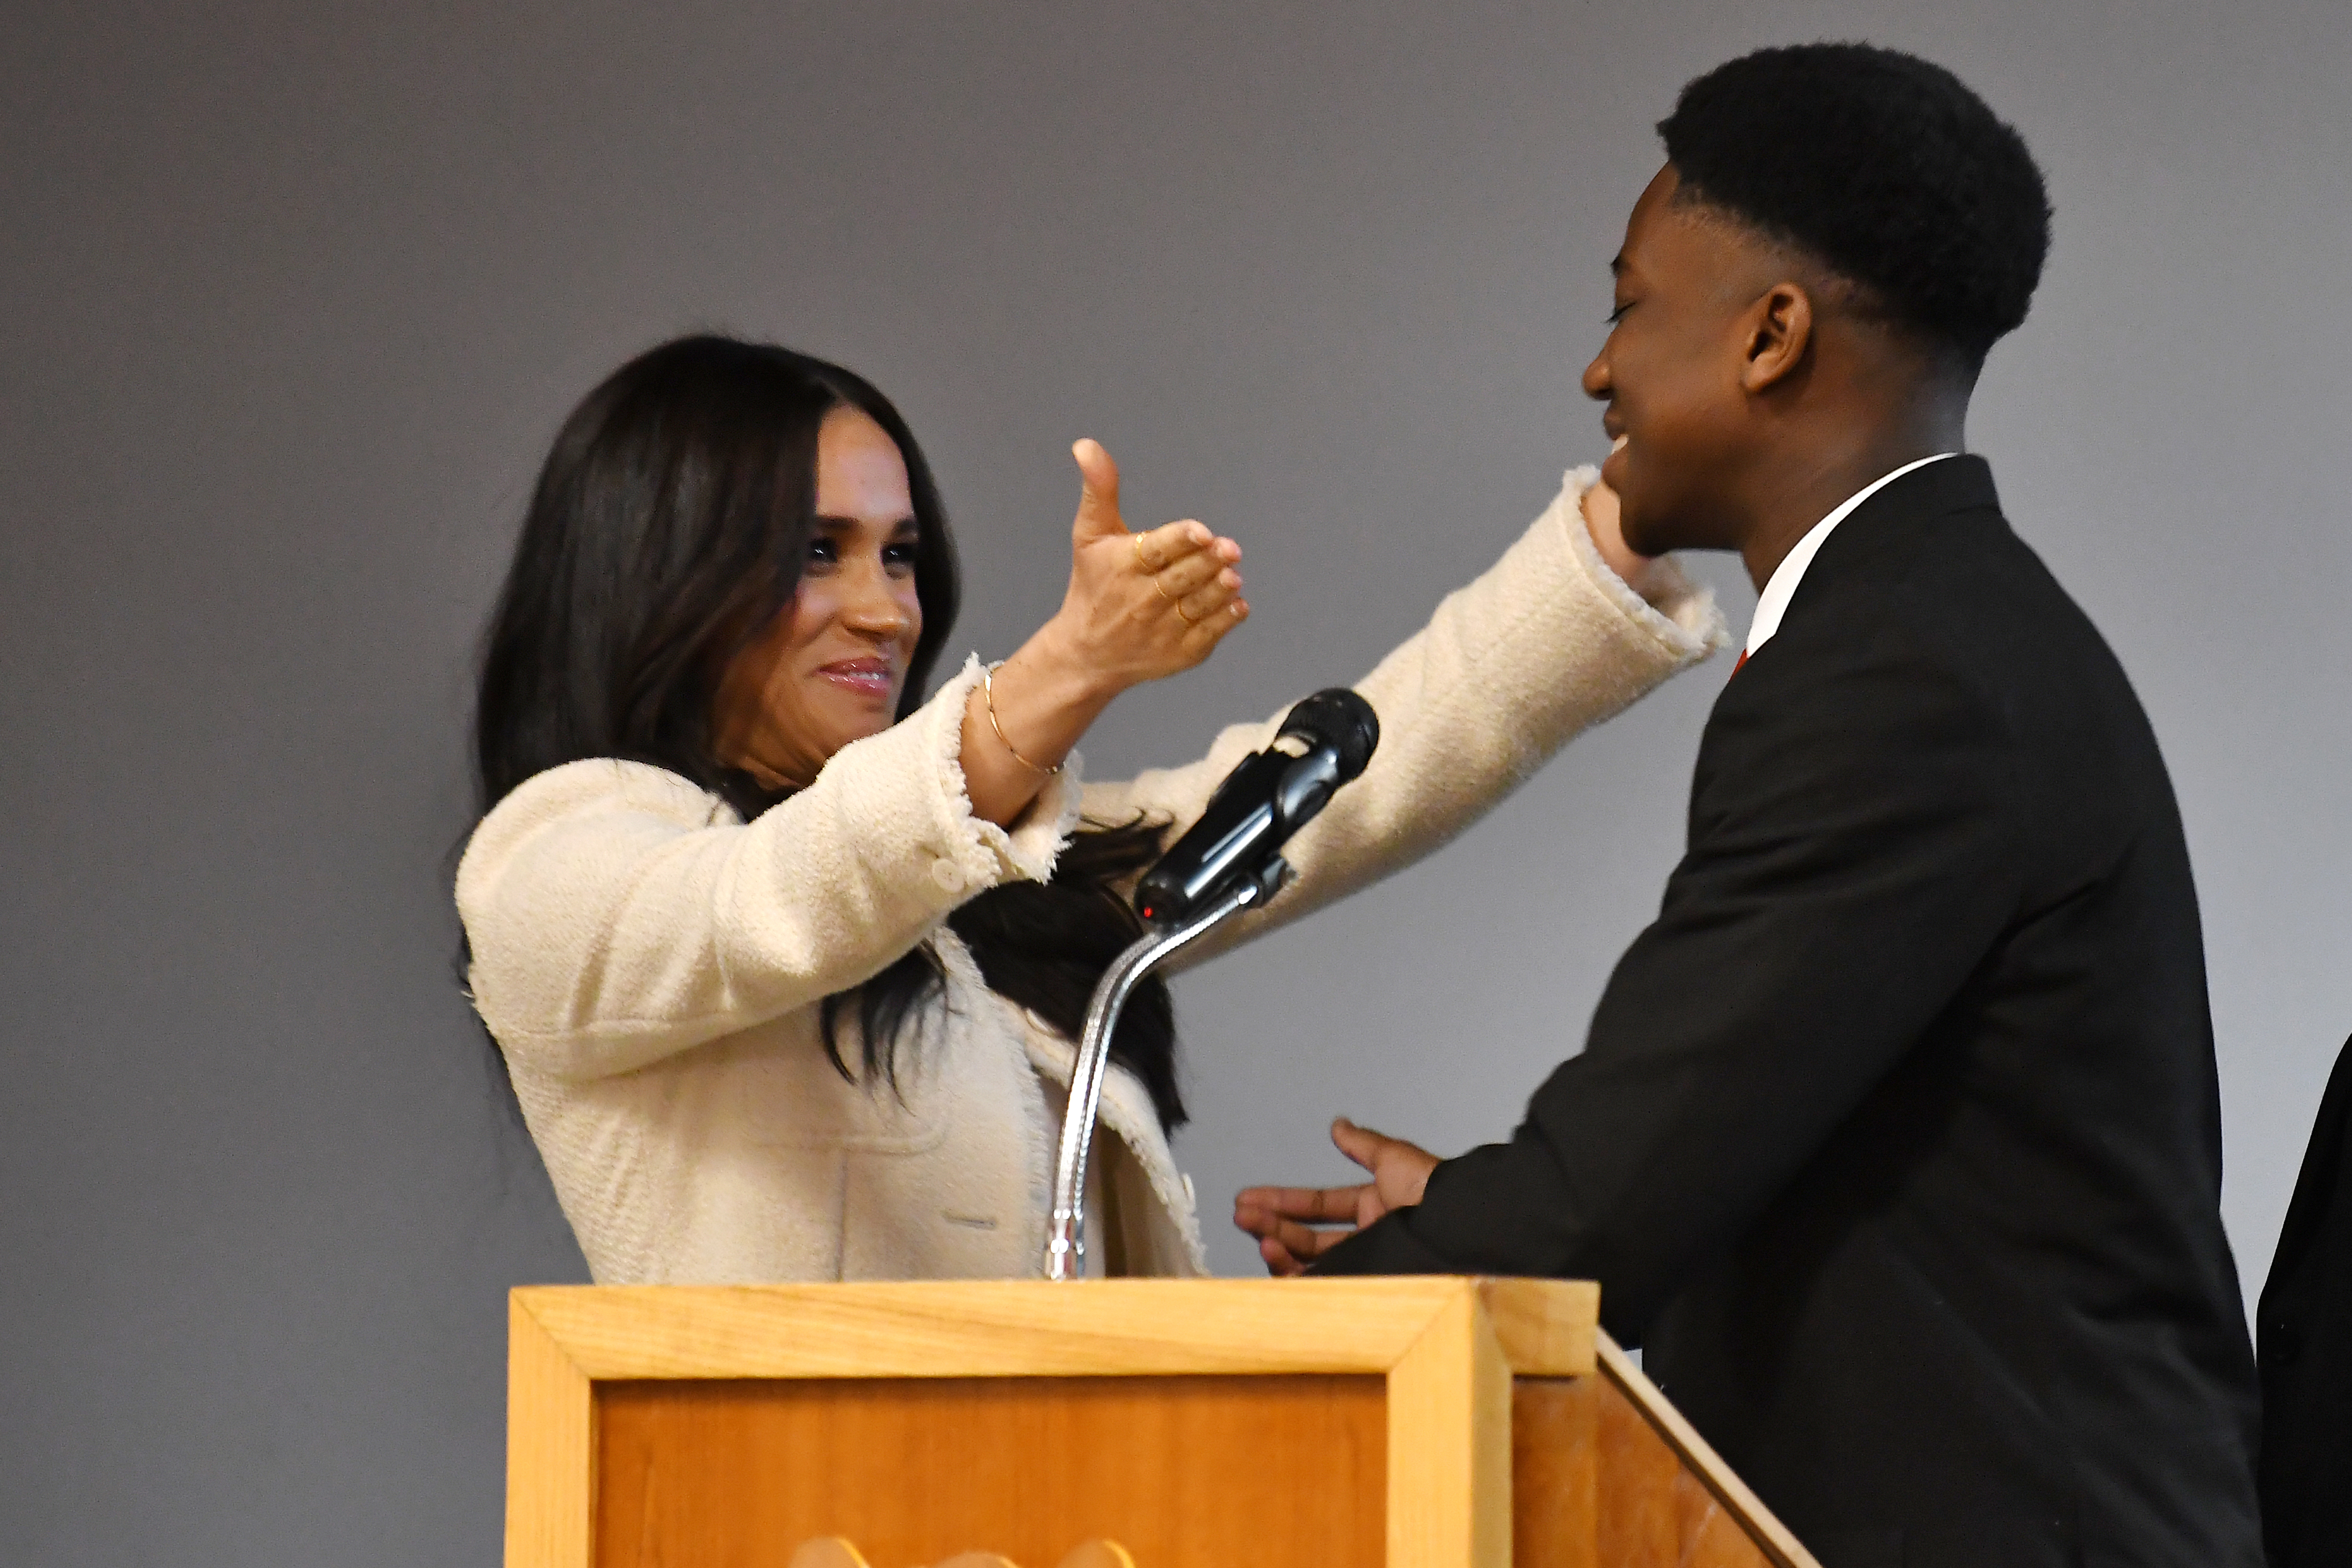 The Duchess of Sussex (left) embraces head boy Aker Okoye, in a school assembly, during her surprise visit to the Robert Clack Upper School in Dagenham, Essex, to celebrate International Women's Day.